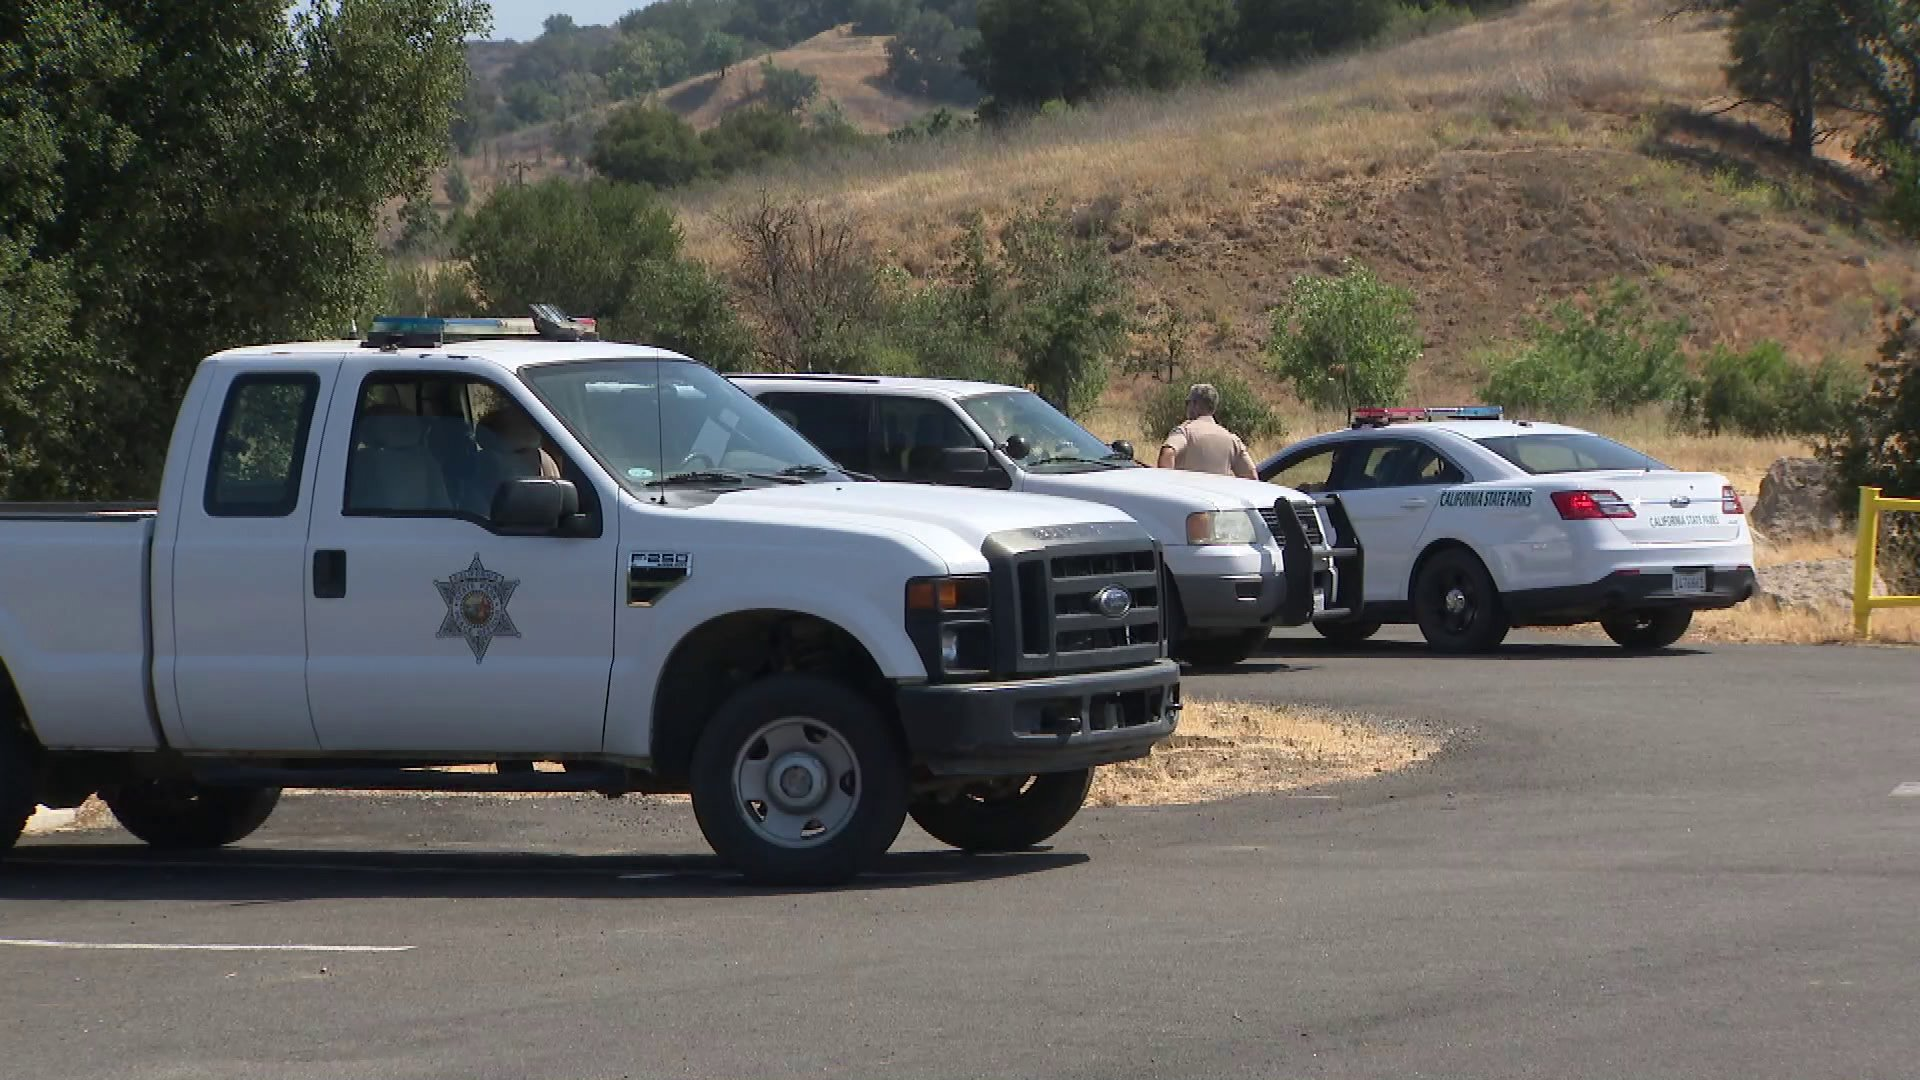 Authorities investigate the scene at Malibu Creek State Park where a father was shot while camping with his two young daughters on June 22, 2018. (Credit: KTLA)